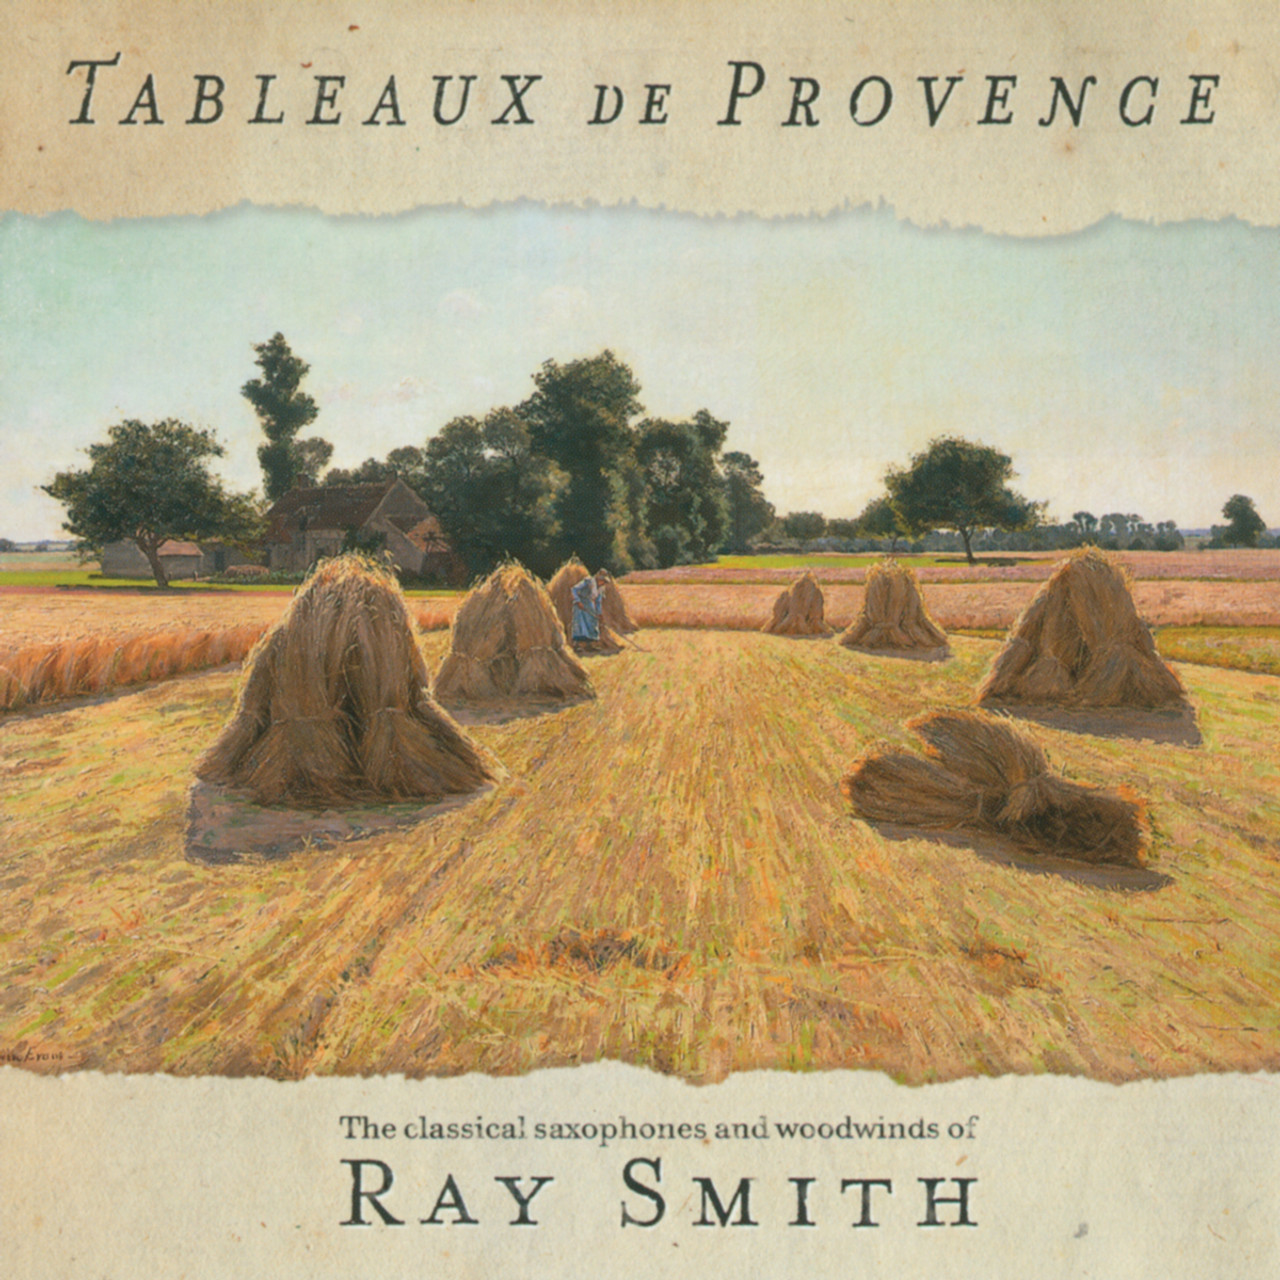 tableaux de provence cd ray smith byu music store. Black Bedroom Furniture Sets. Home Design Ideas